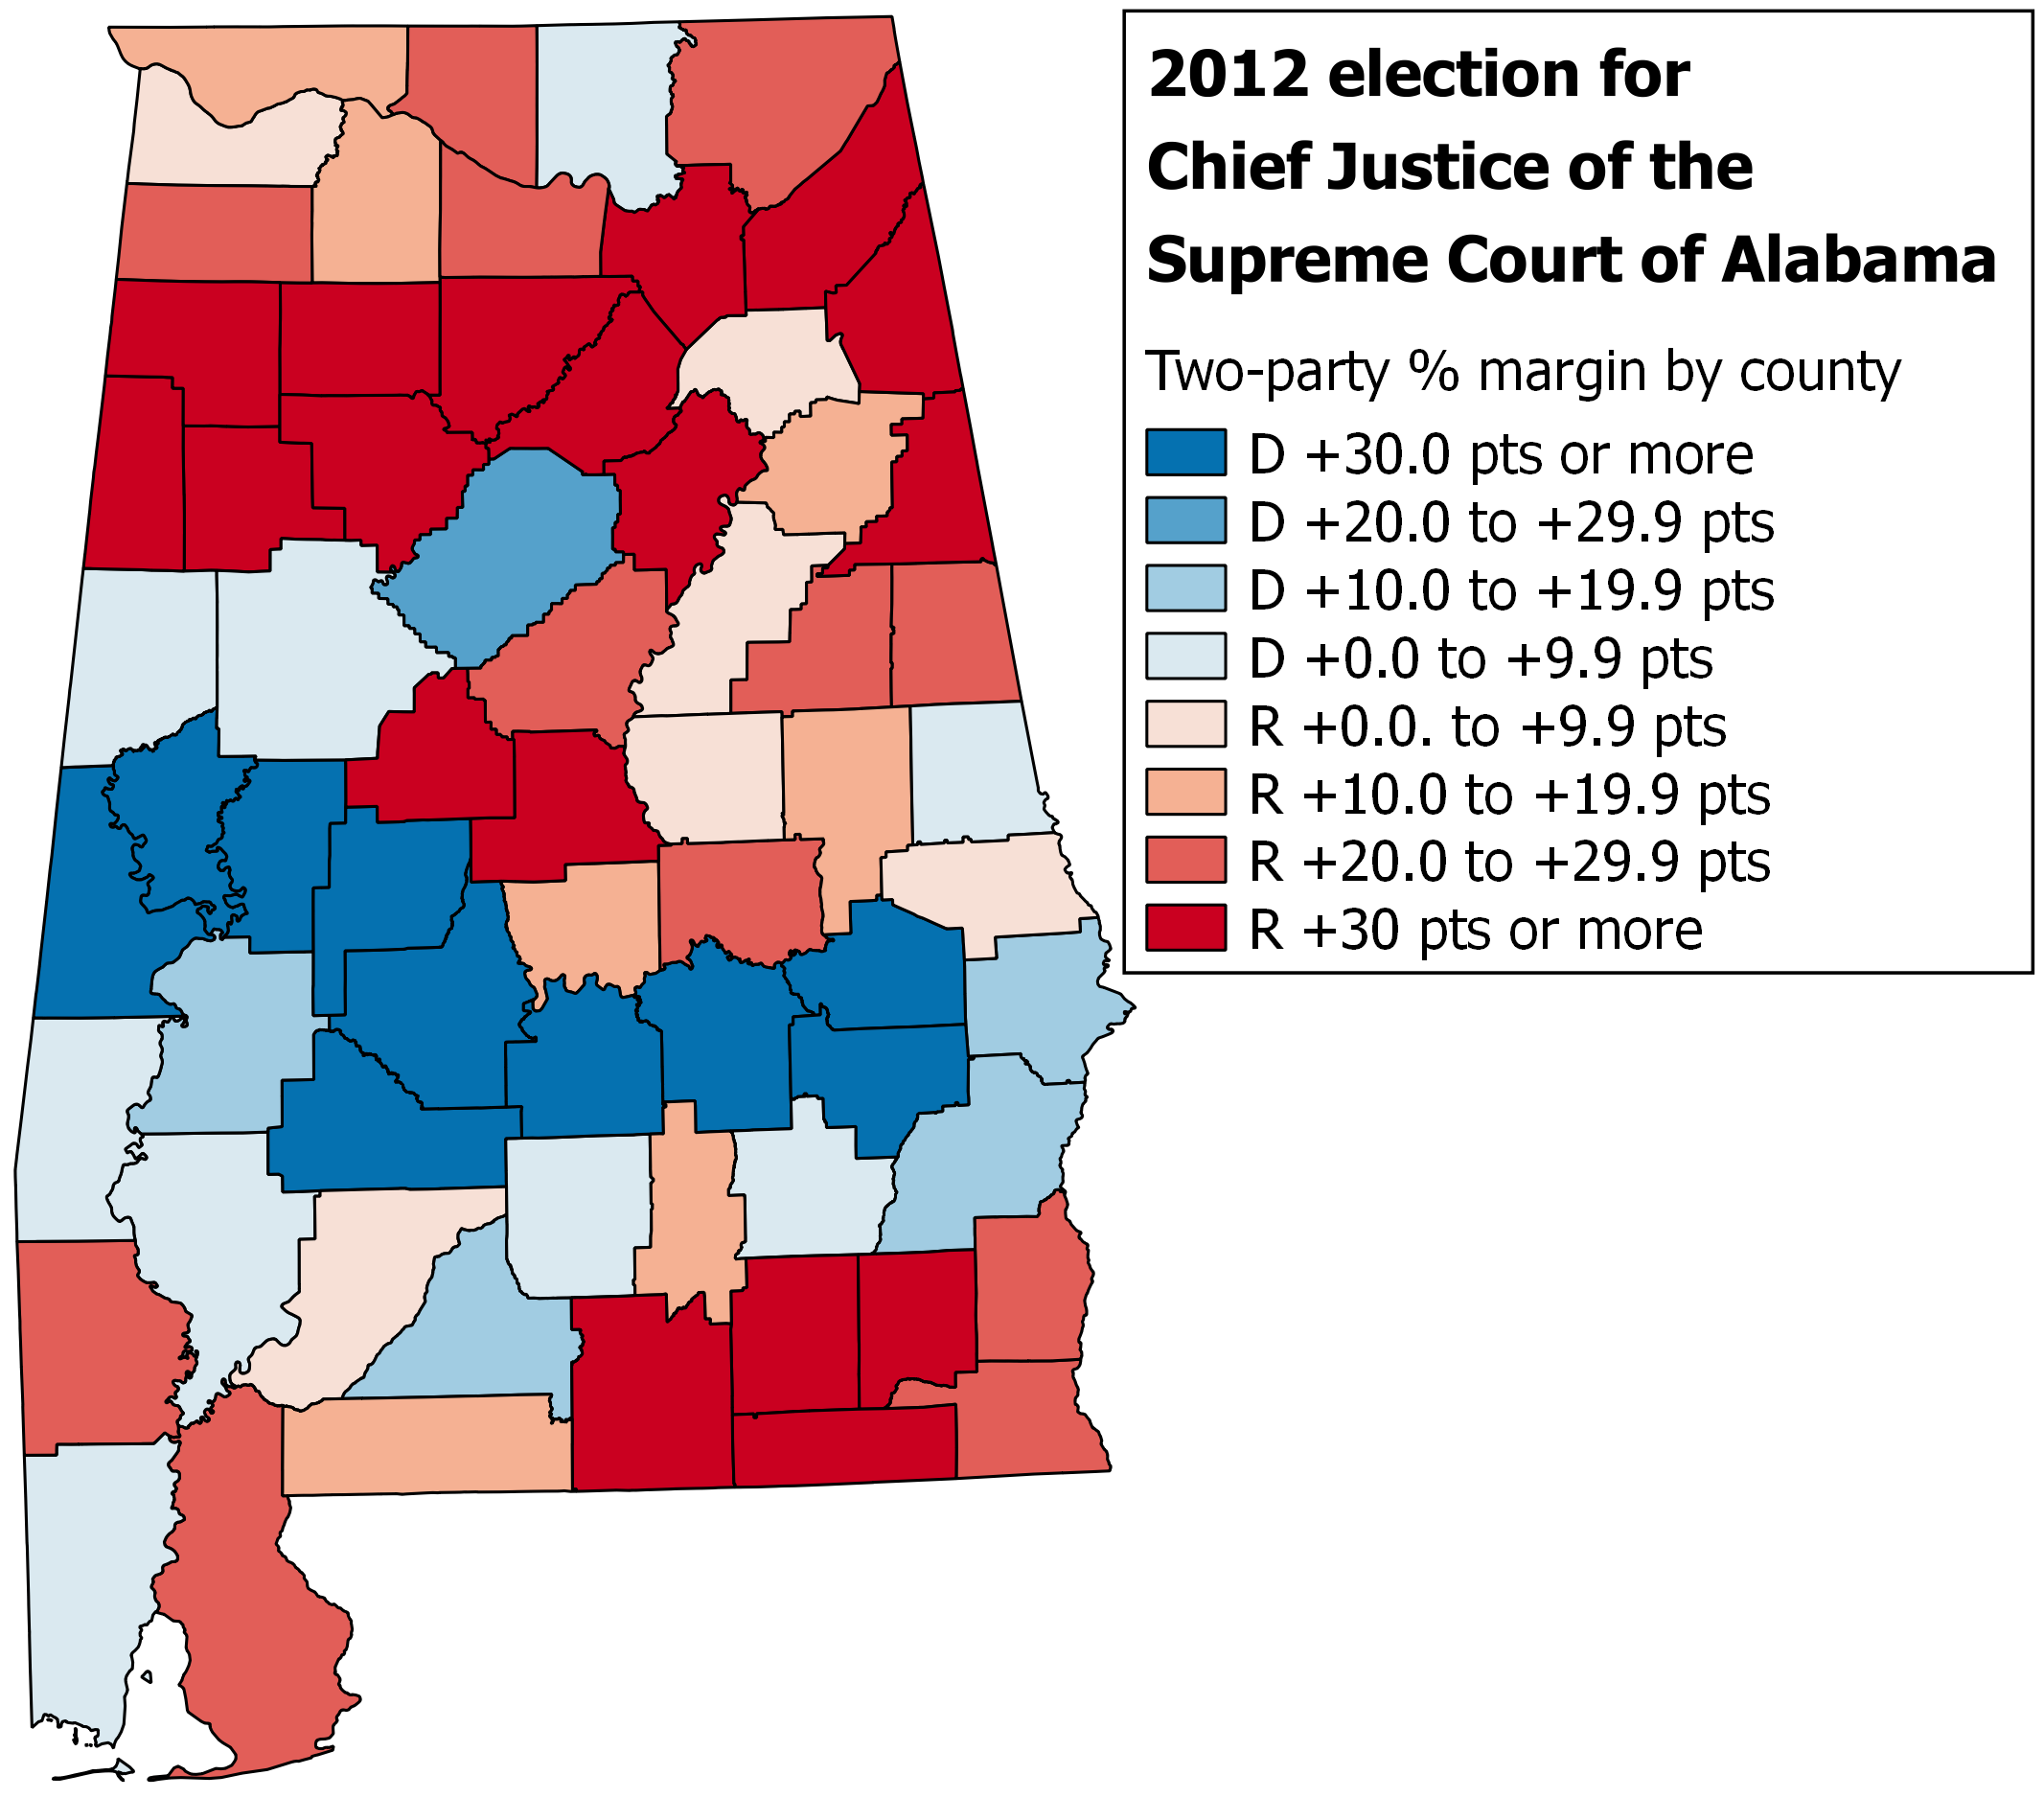 map 2 2012 election for alabama chief justice by county